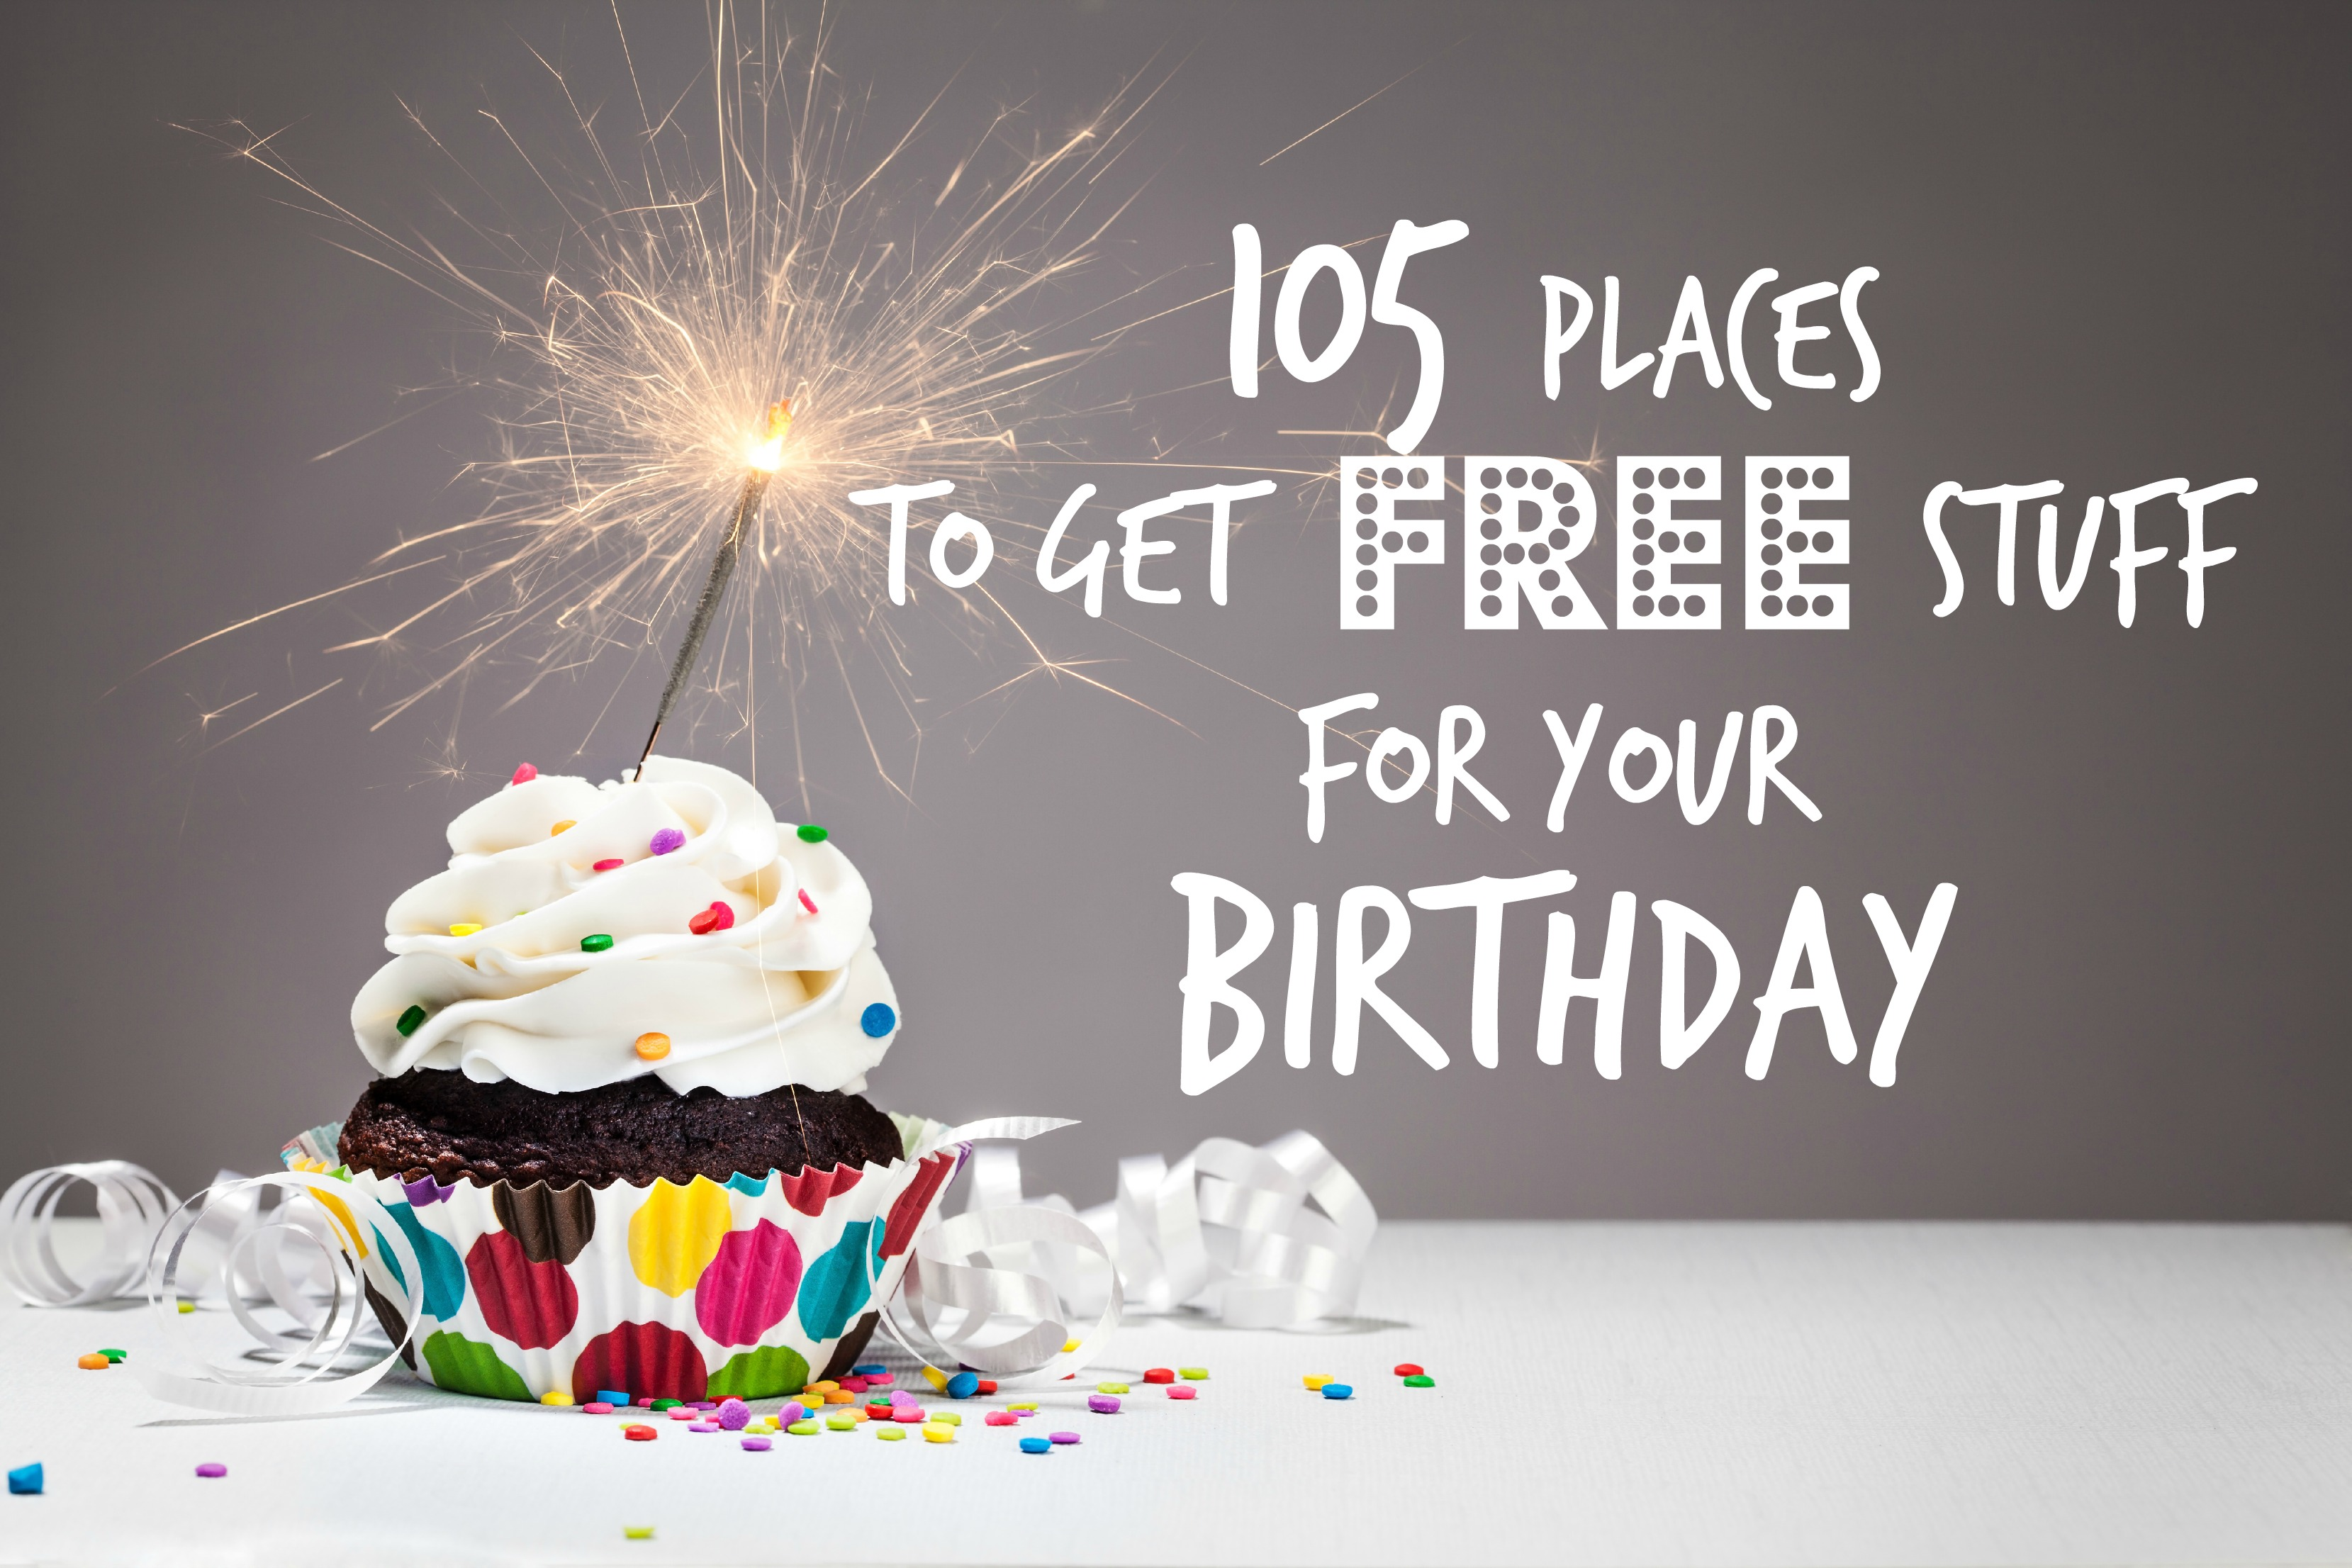 Birthday Freebies 105 Places To Get Free Stuff For Your Birthday